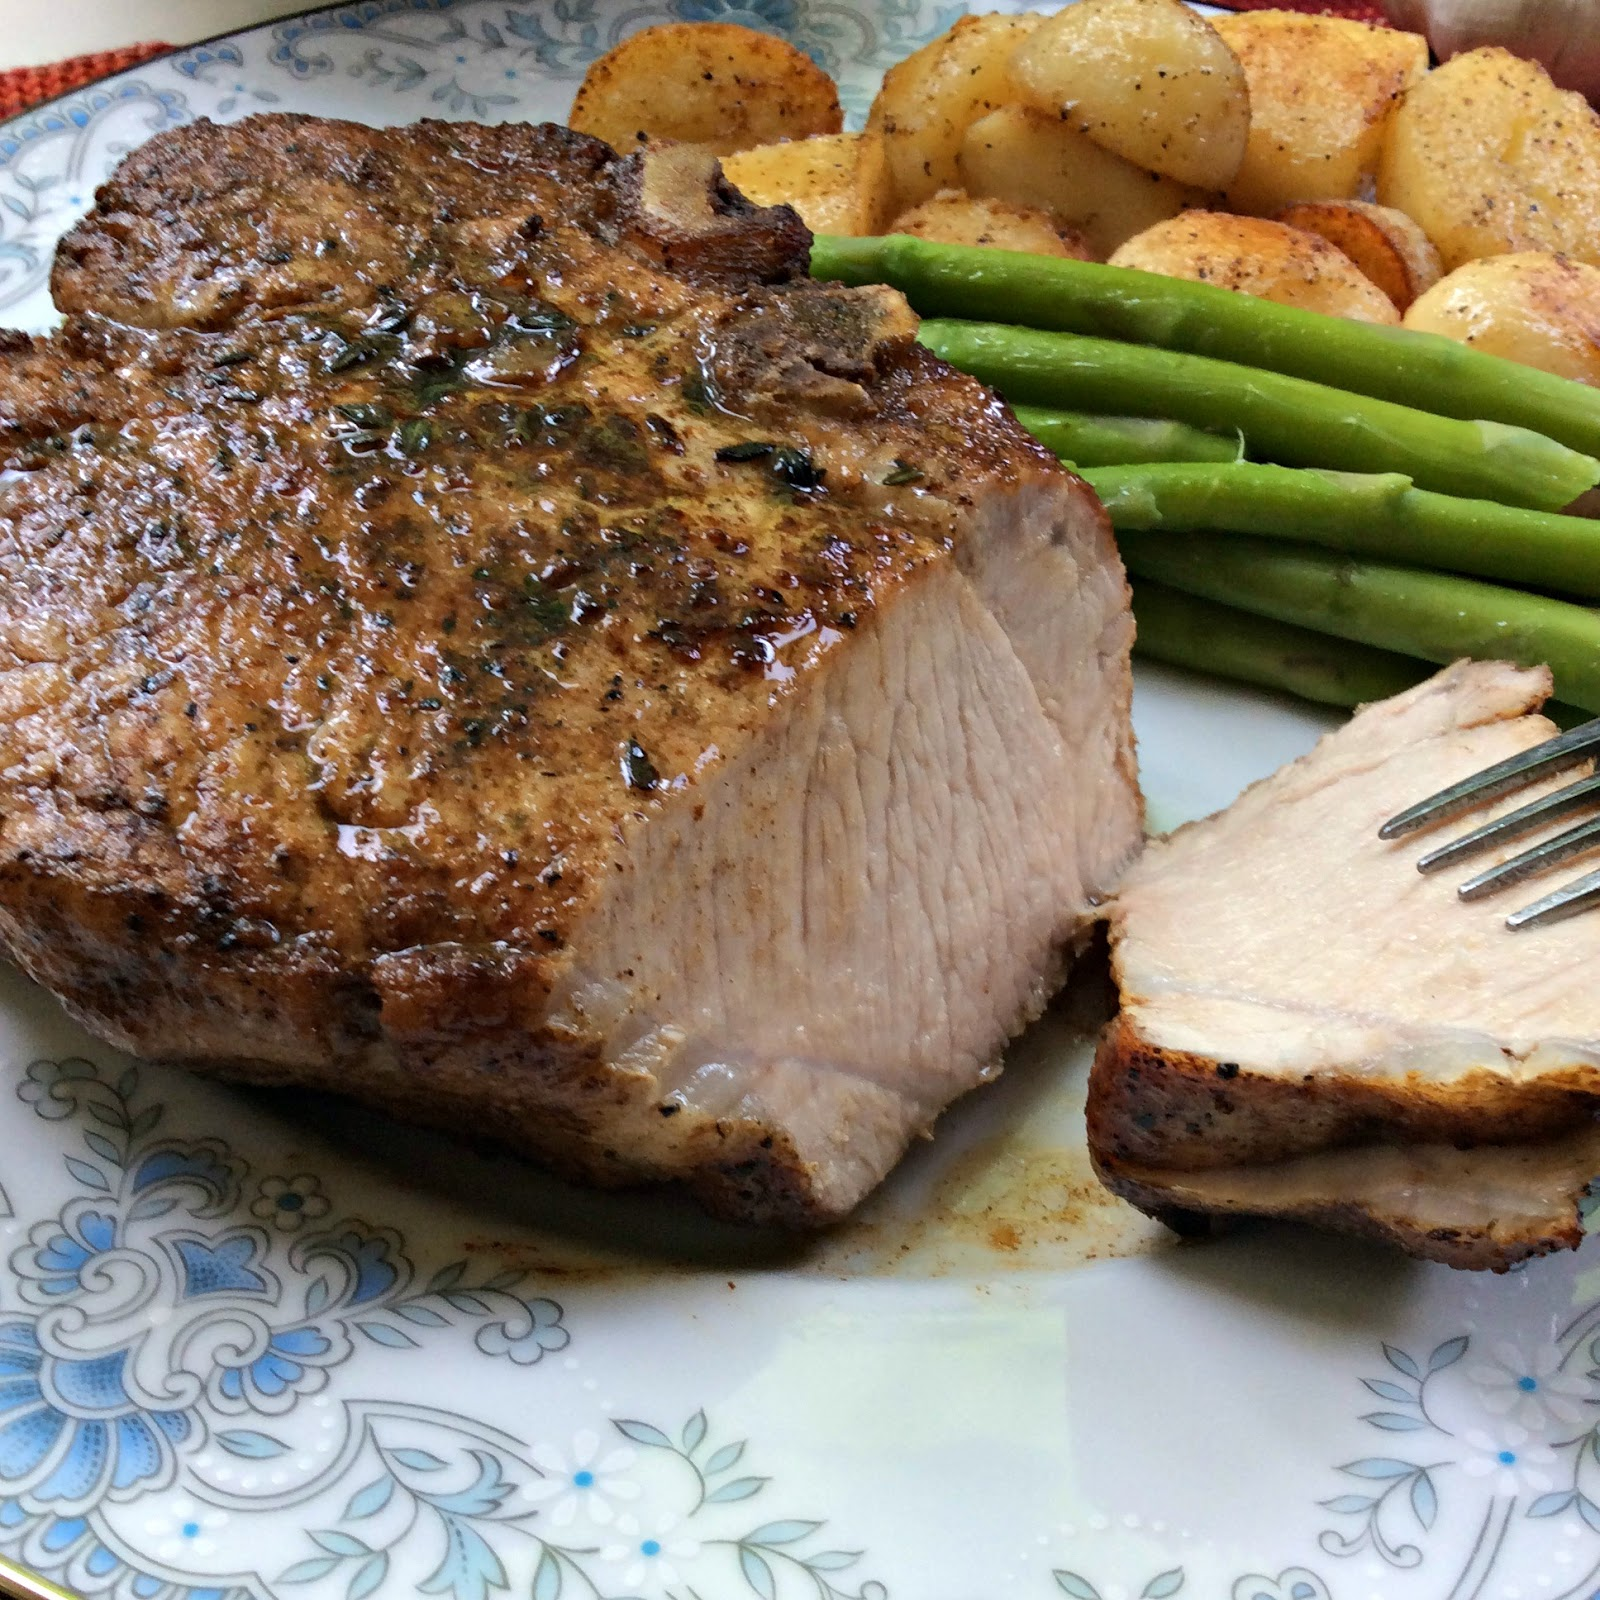 Chops On The Stove Top Give A Wonderful Taste To The Outside Of The  Chops A Finish In A Hot Oven And You End Up With Juicy And Ever So  Delicious Pork